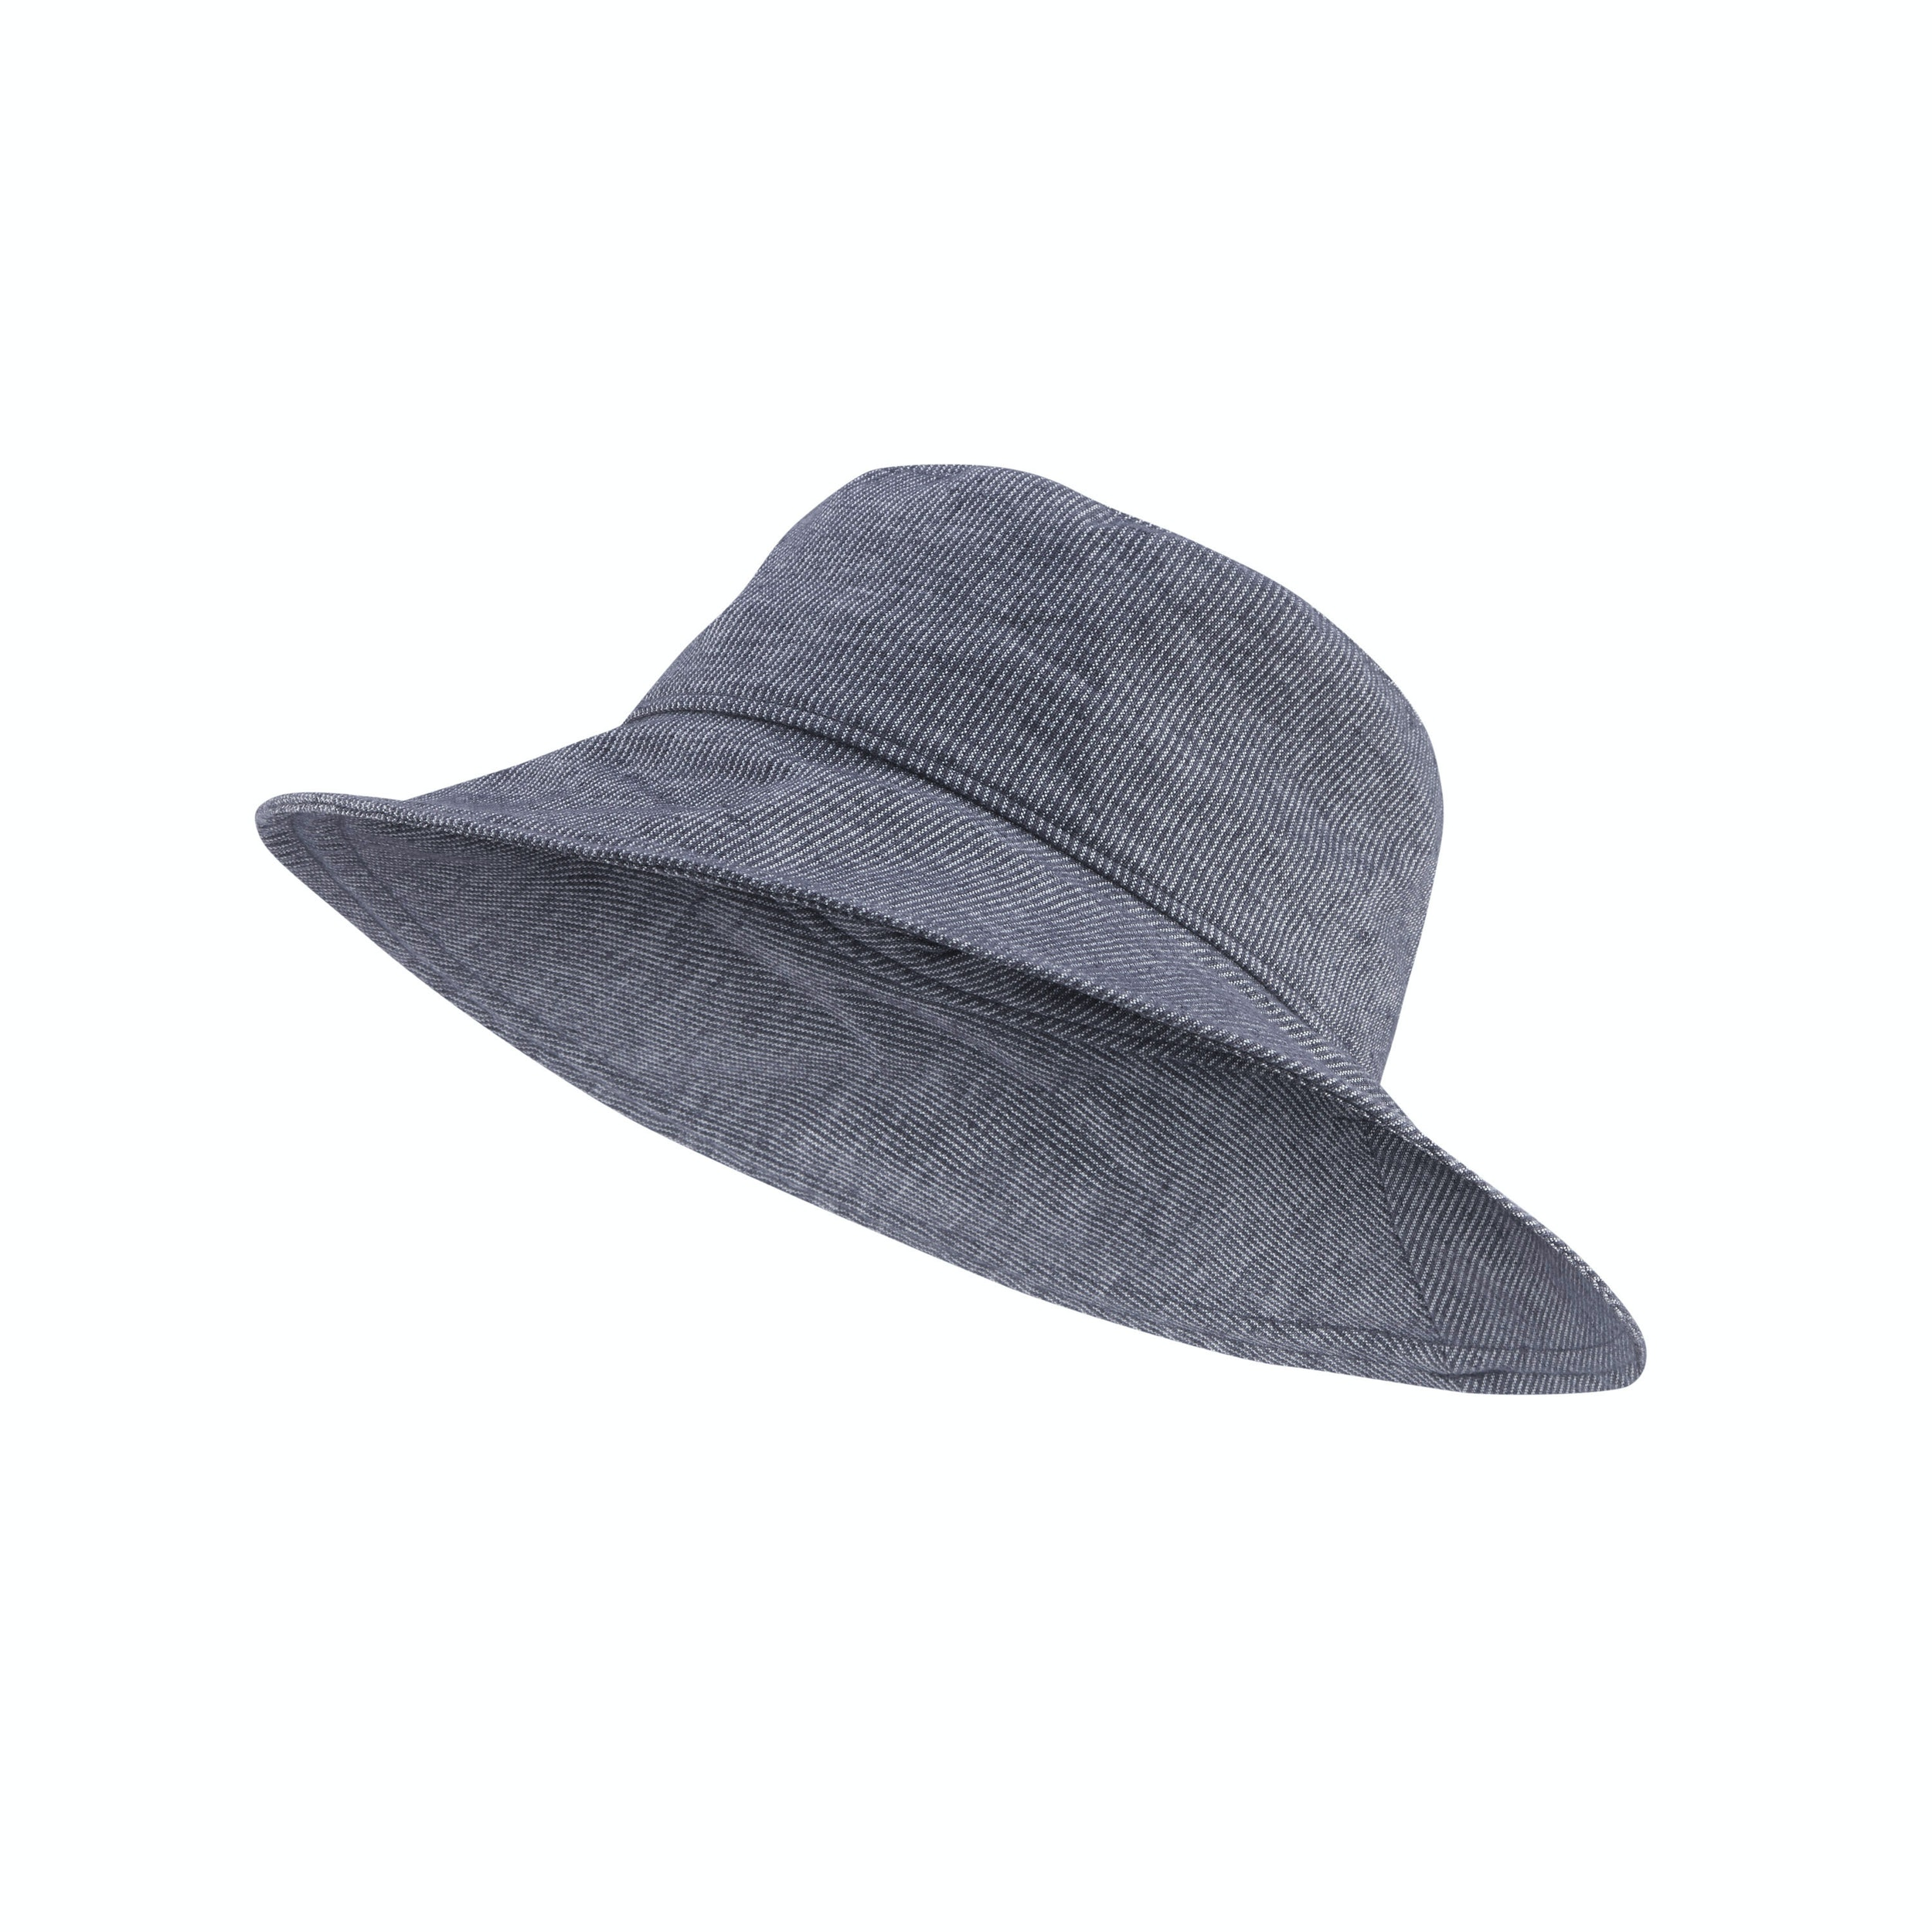 03401e85ec3 Women s Malay Hat - Practical